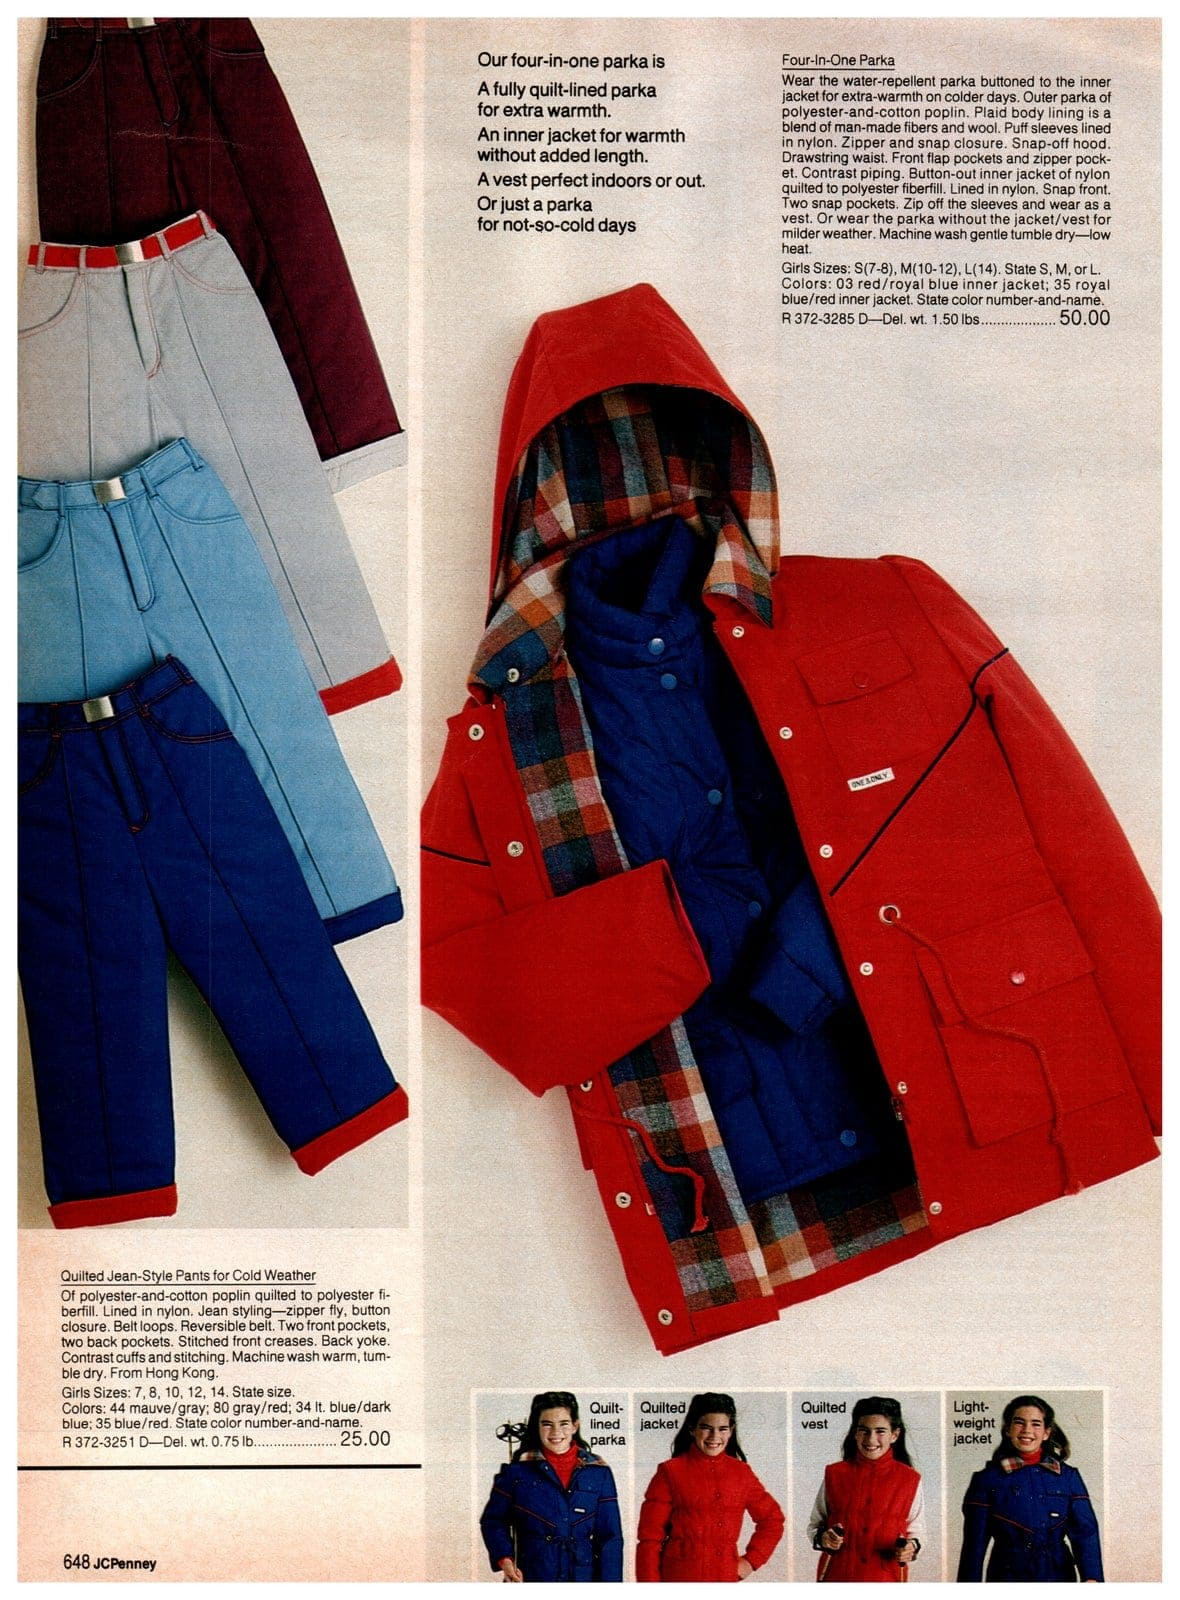 An '80s four-in-one fully-lined parka with vest, and quilted jean-style cold weather pants